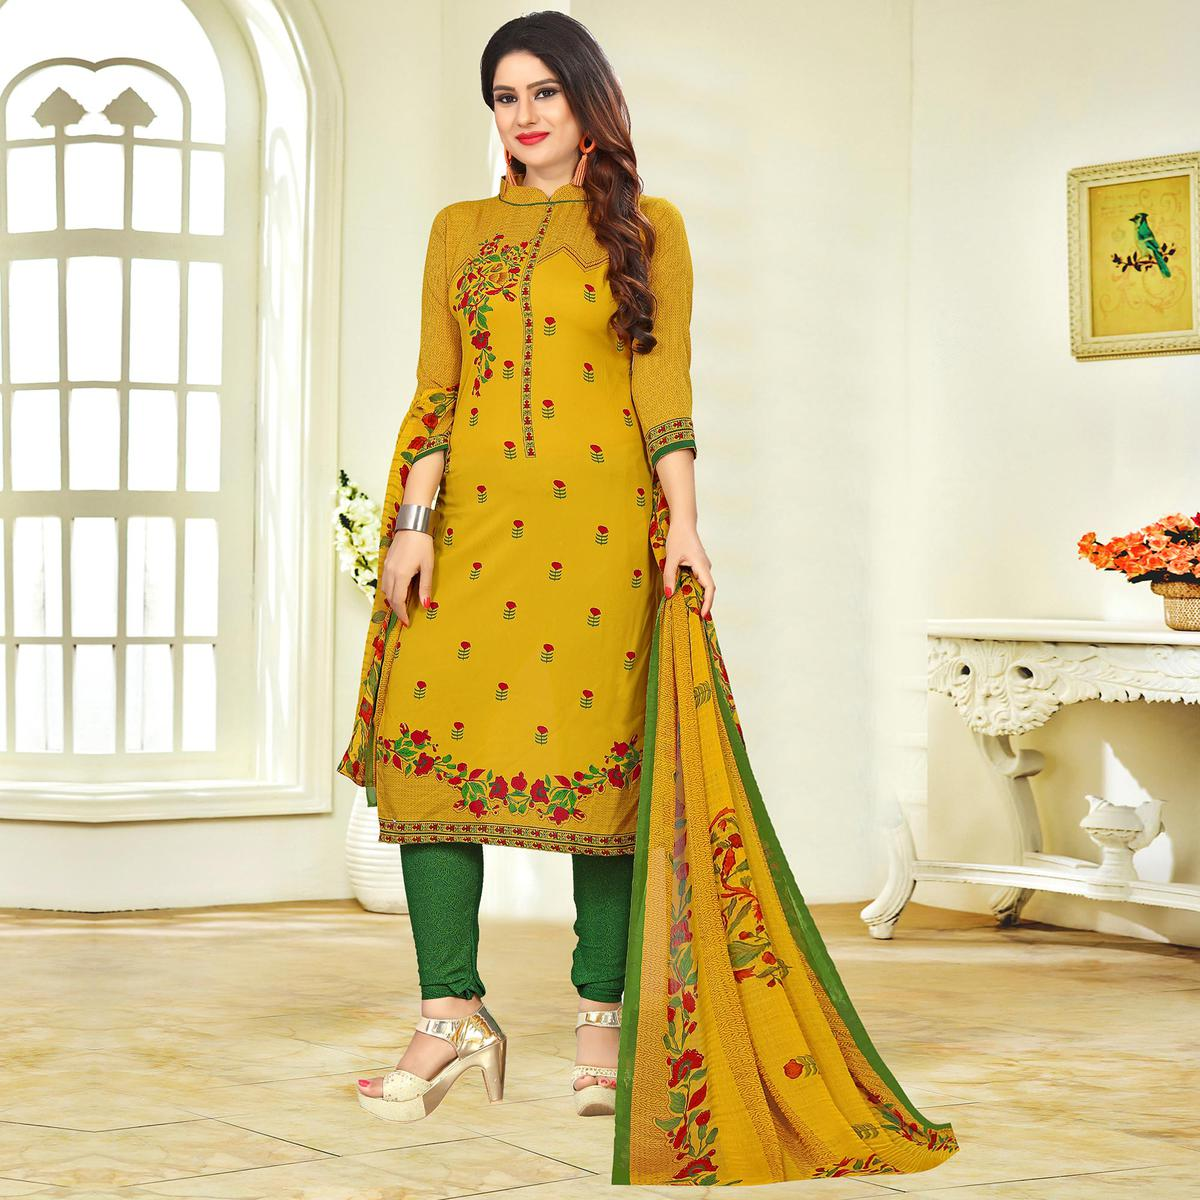 Sophisticated Mustard Yellow Colored Casual Printed E Dress Material